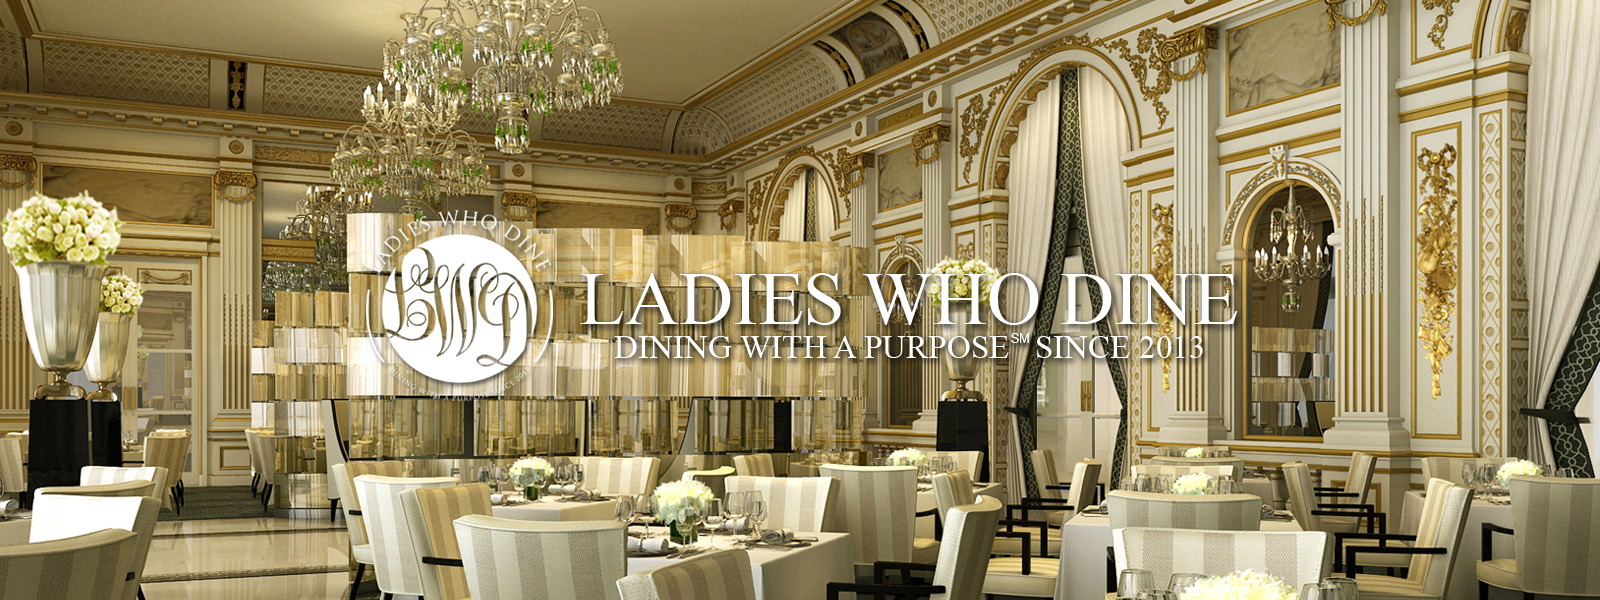 ladieswhodine-slide-1-final-SMv2